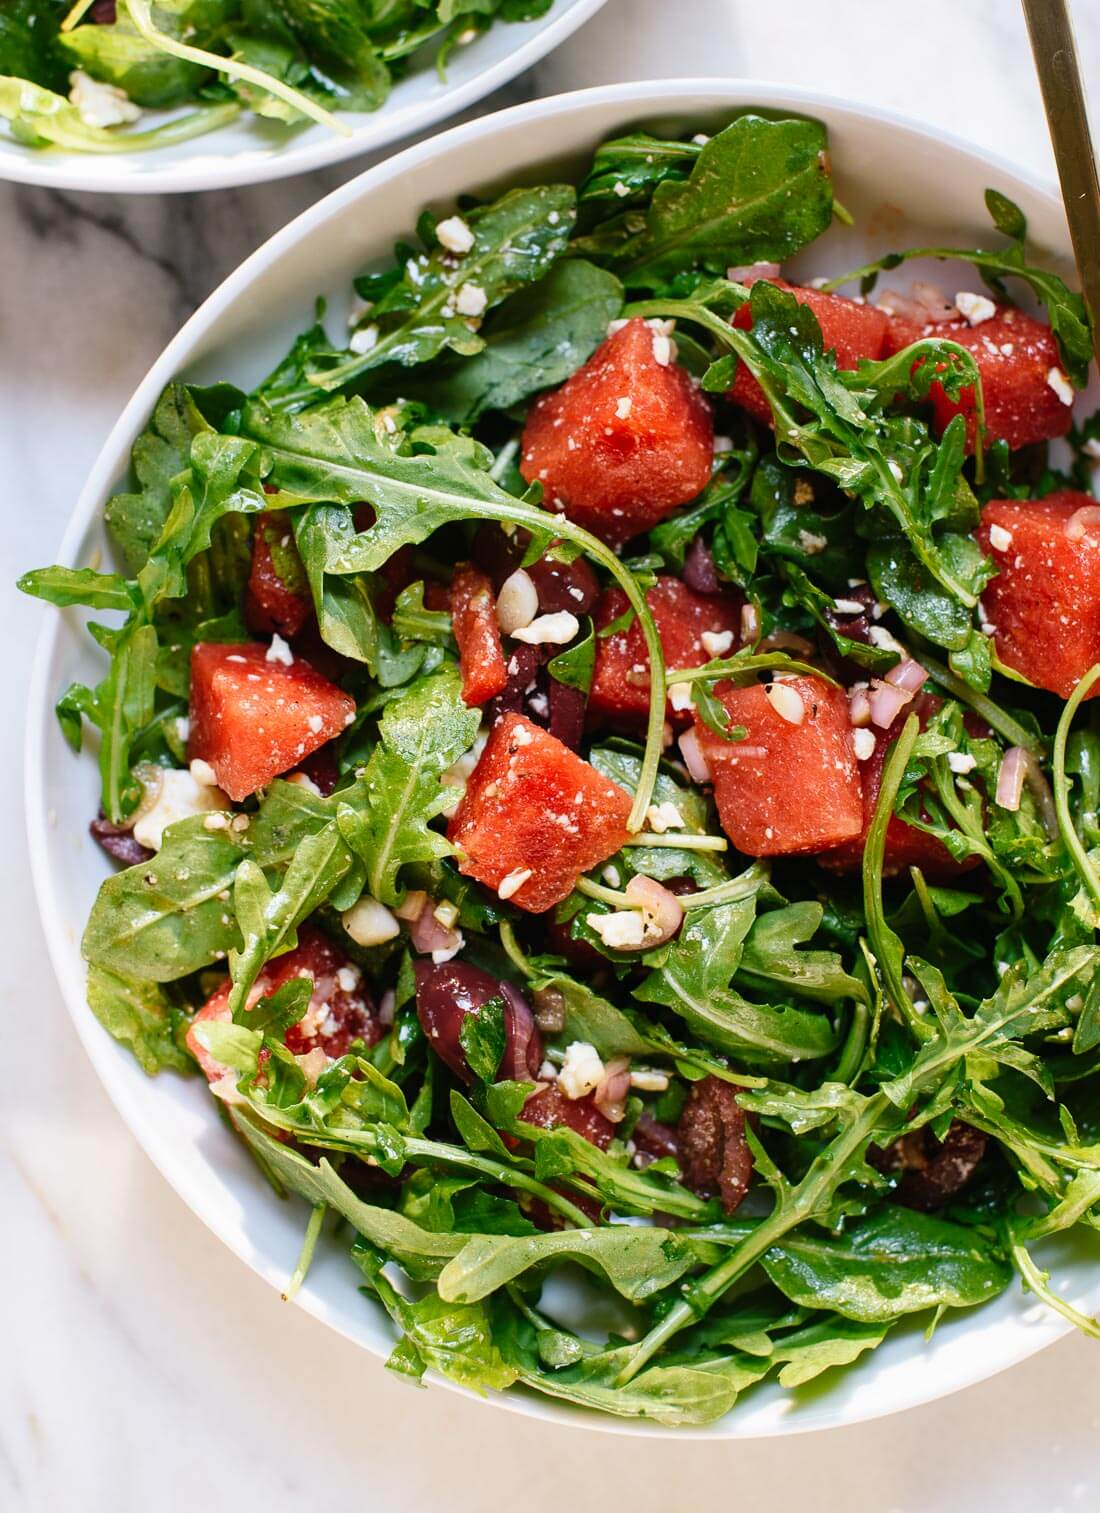 Sweet and savory arugula watermelon salad recipe with tangy feta - cookieandkate.com